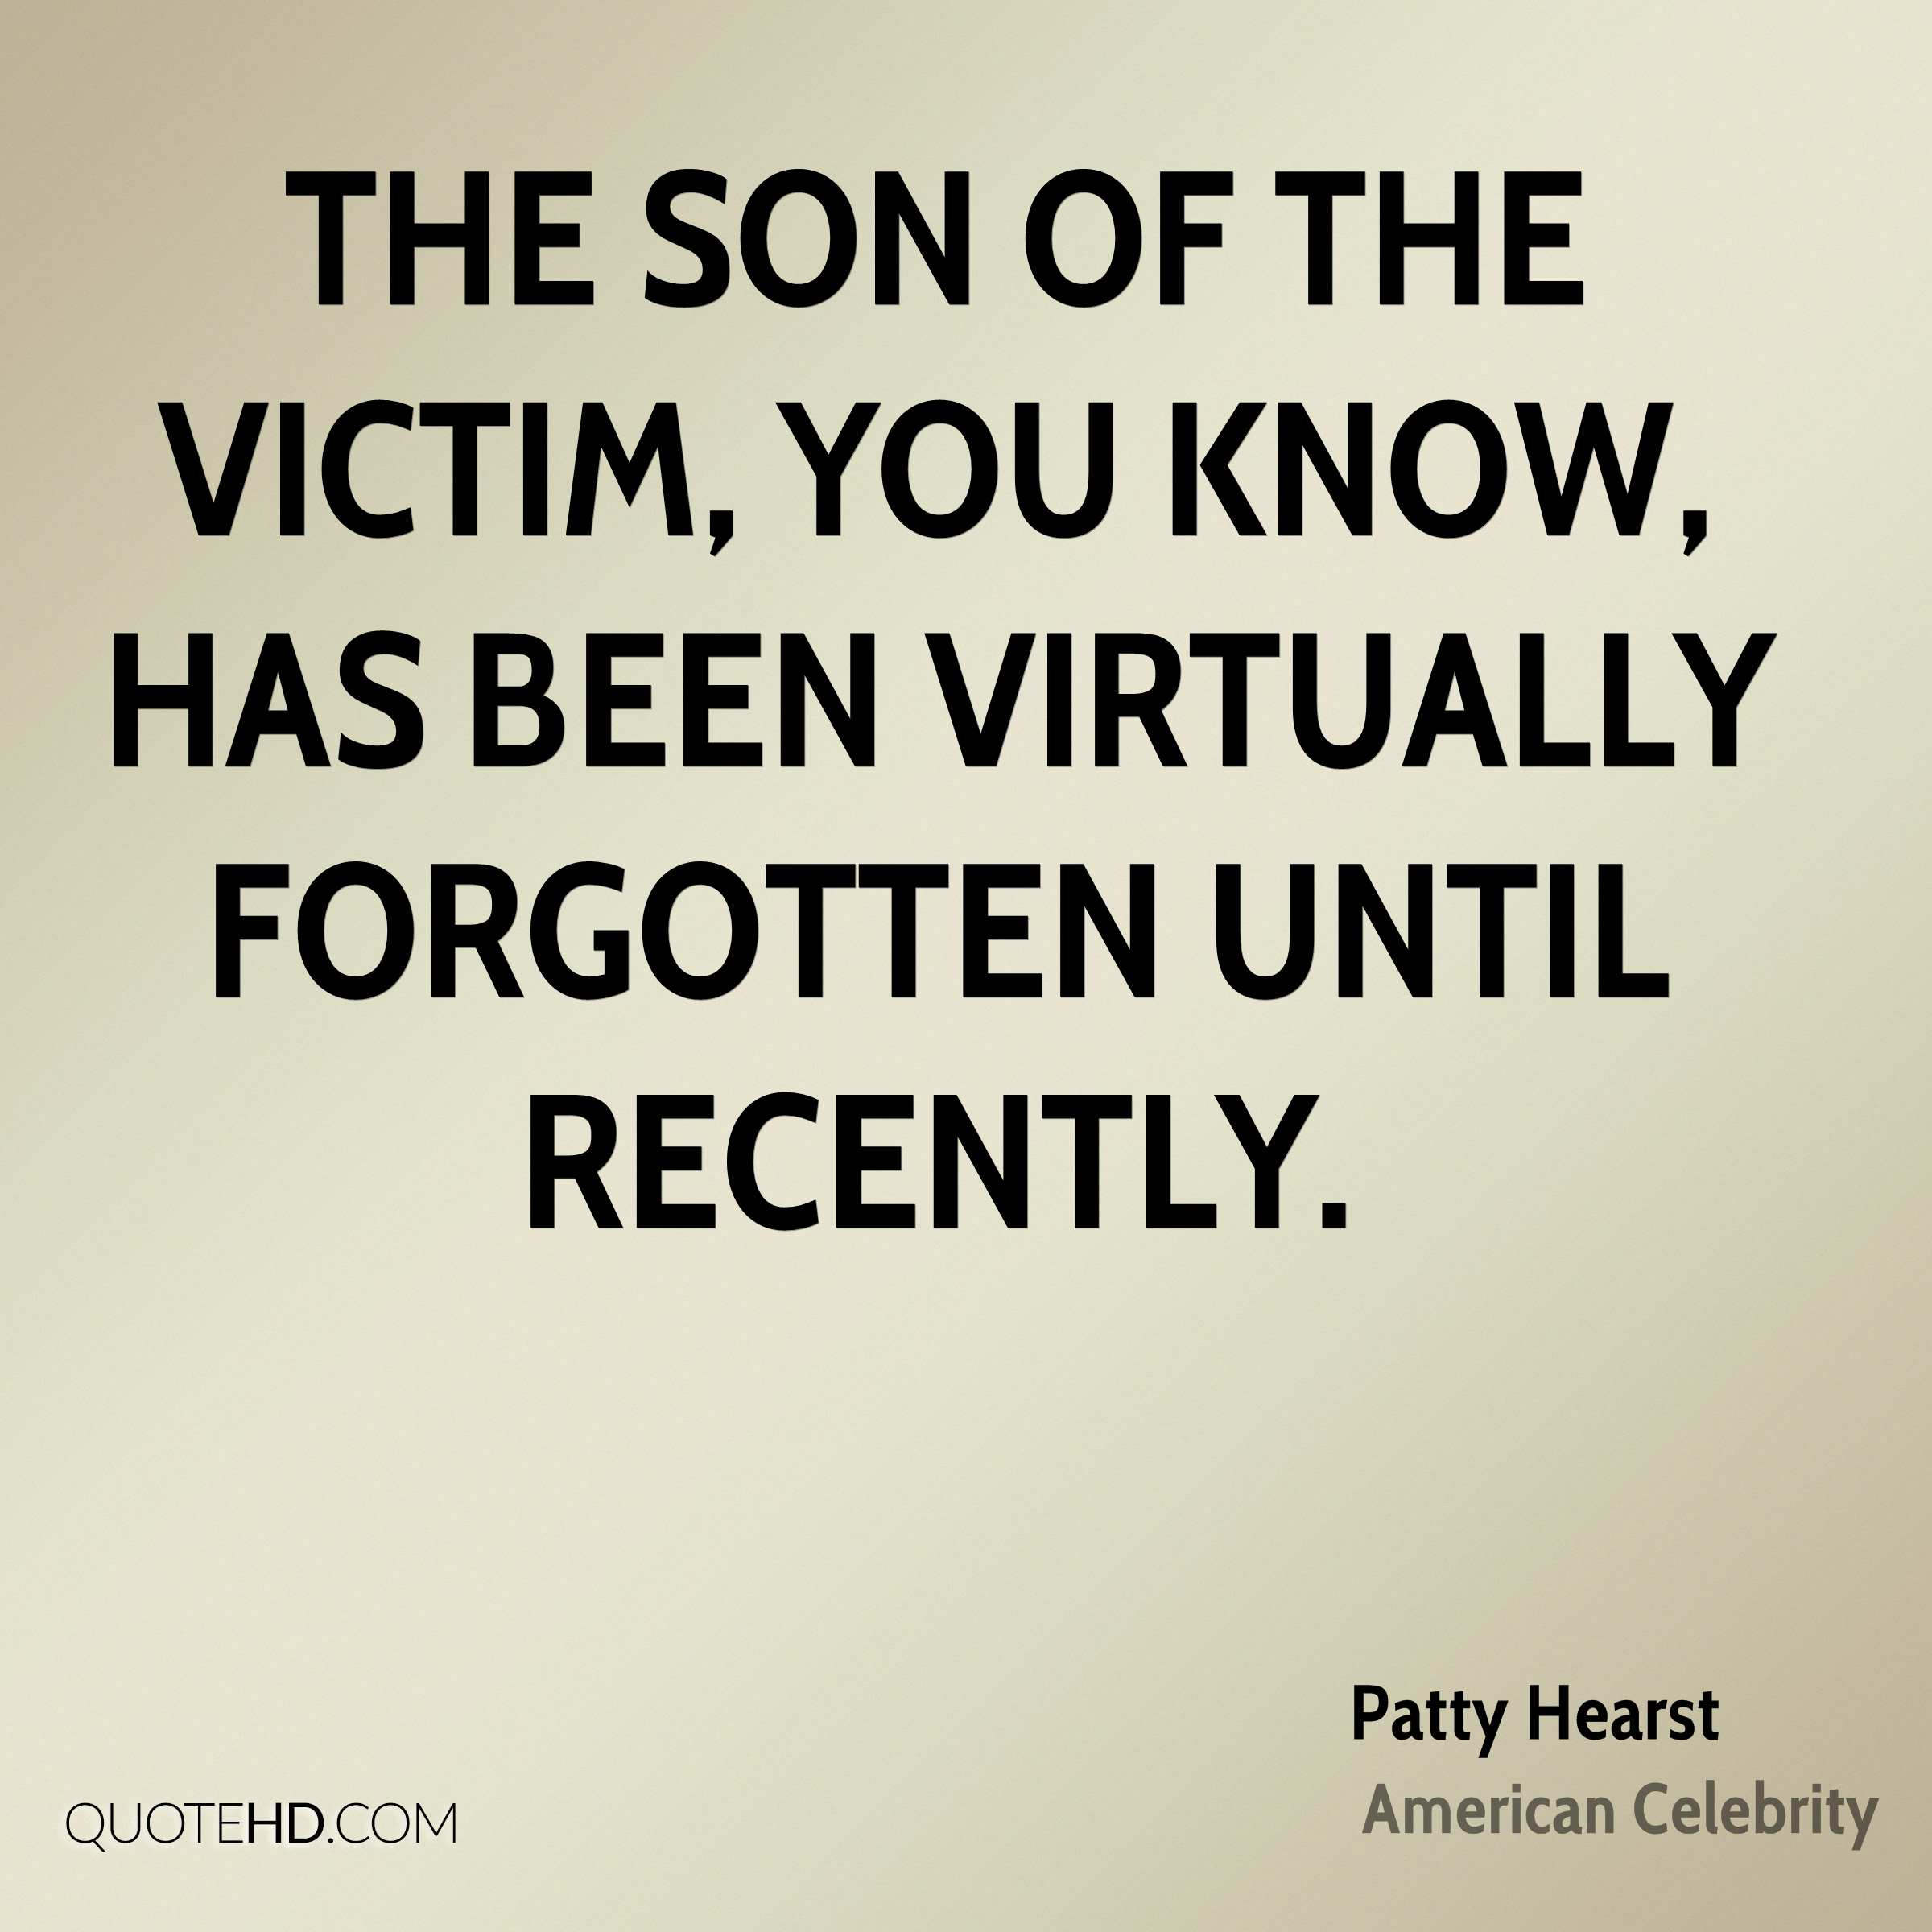 The son of the victim, you know, has been virtually forgotten until recently.